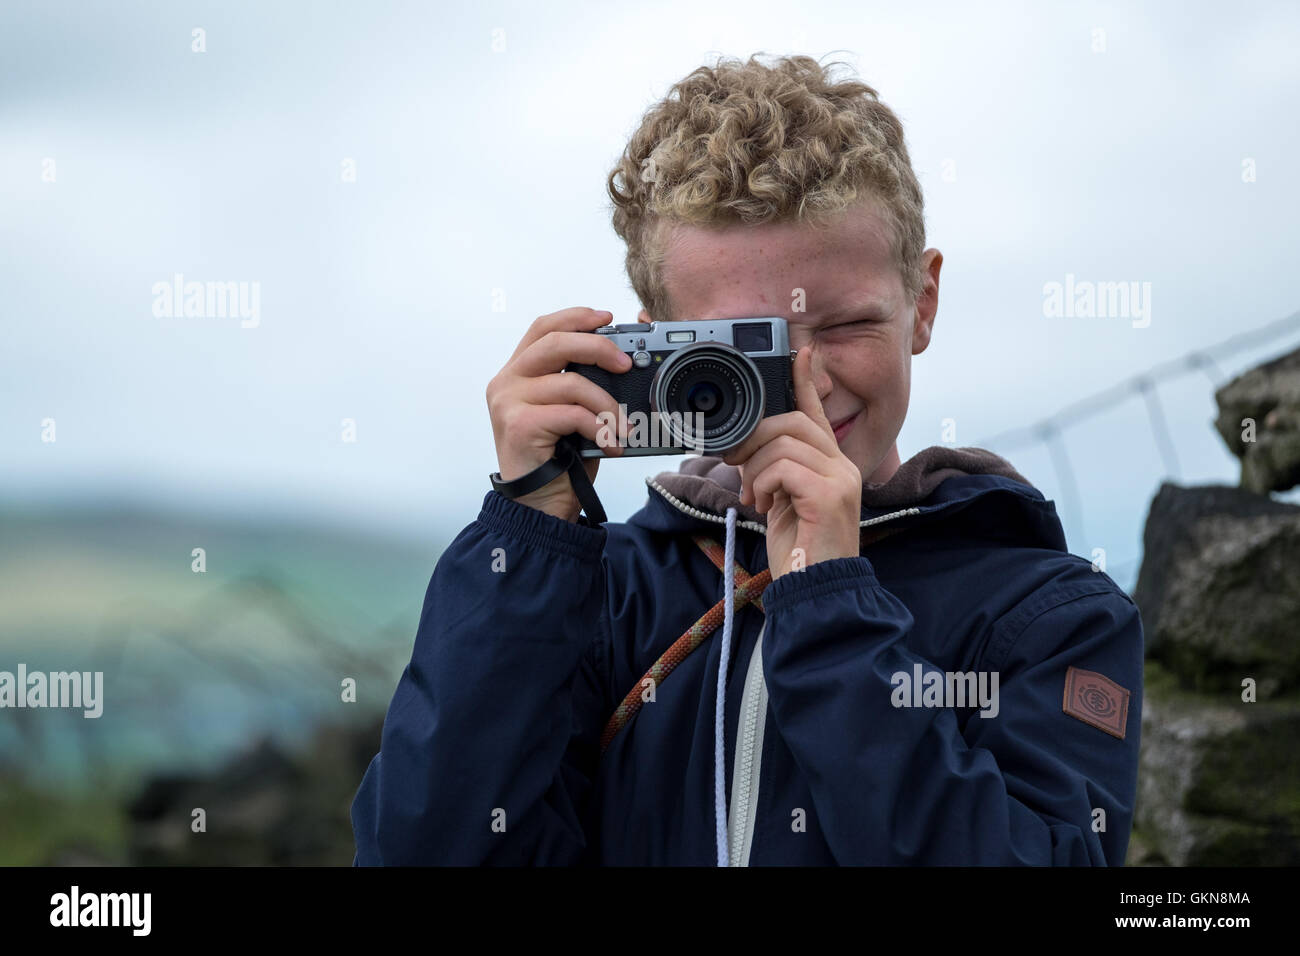 A young blonde haired boy taking a photo with a vintage camera - Stock Image